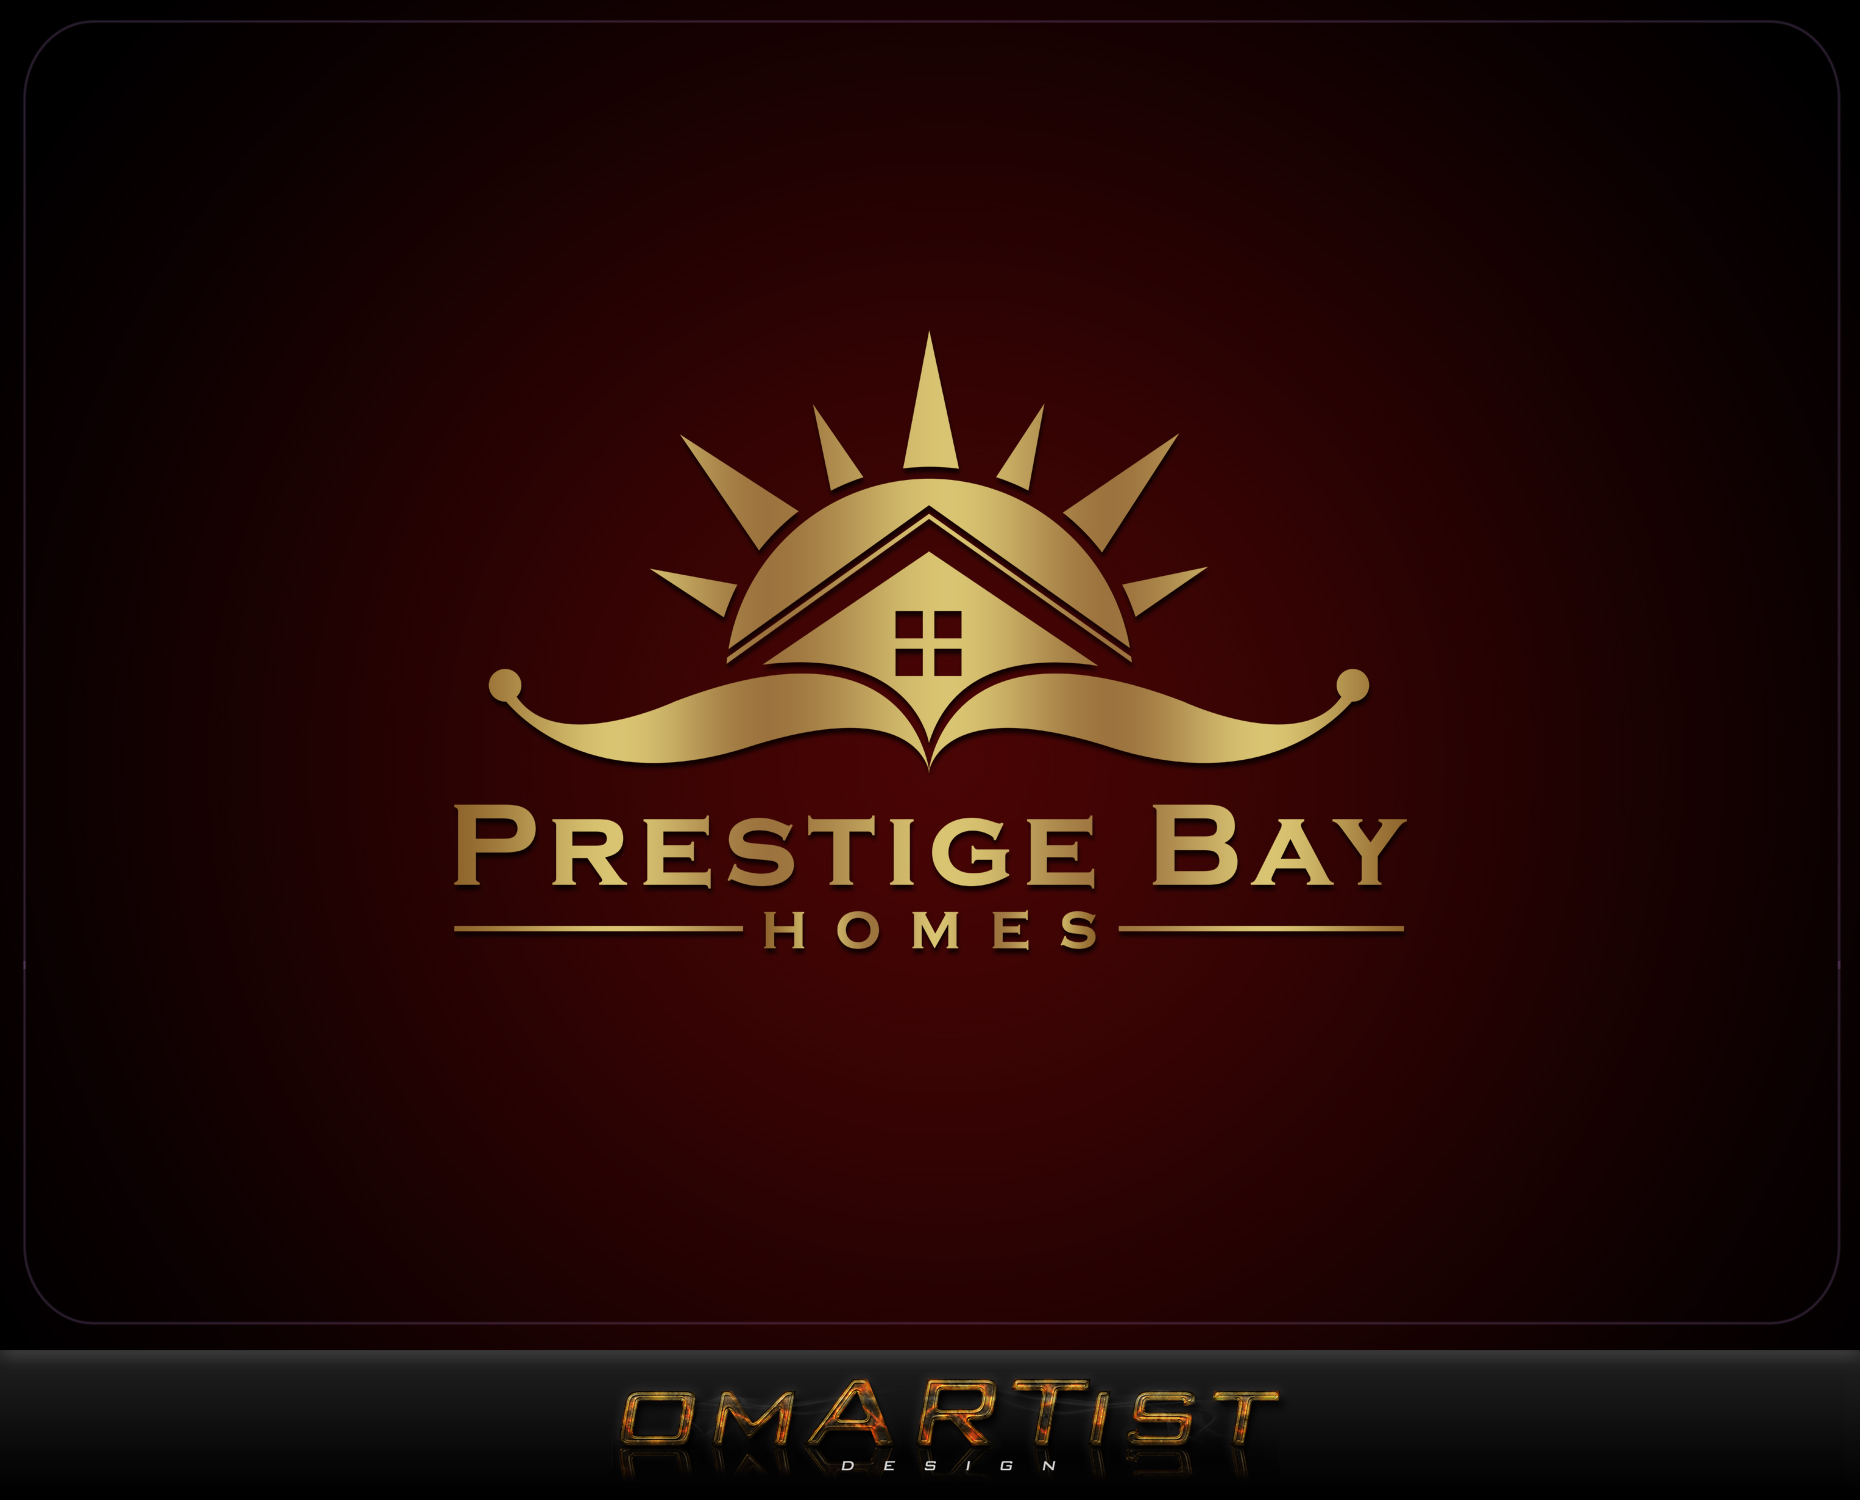 Logo Design by omARTist - Entry No. 144 in the Logo Design Contest Imaginative Logo Design for Prestige Bay Homes.